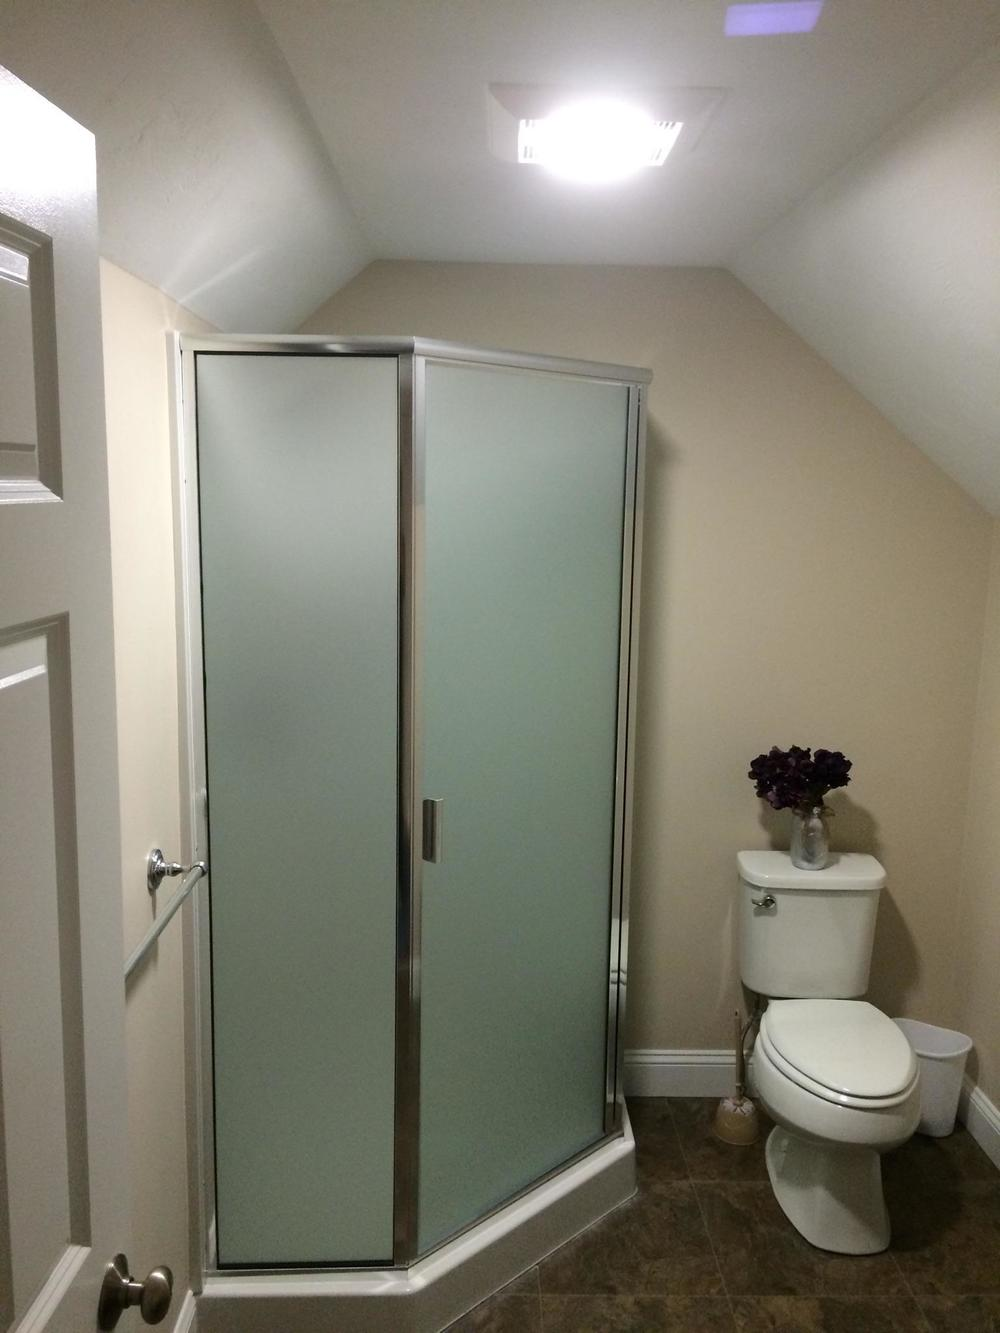 Basic Bathroom completed by CORE Remodeling Services Attic Remodel - Shrewsbury, MA